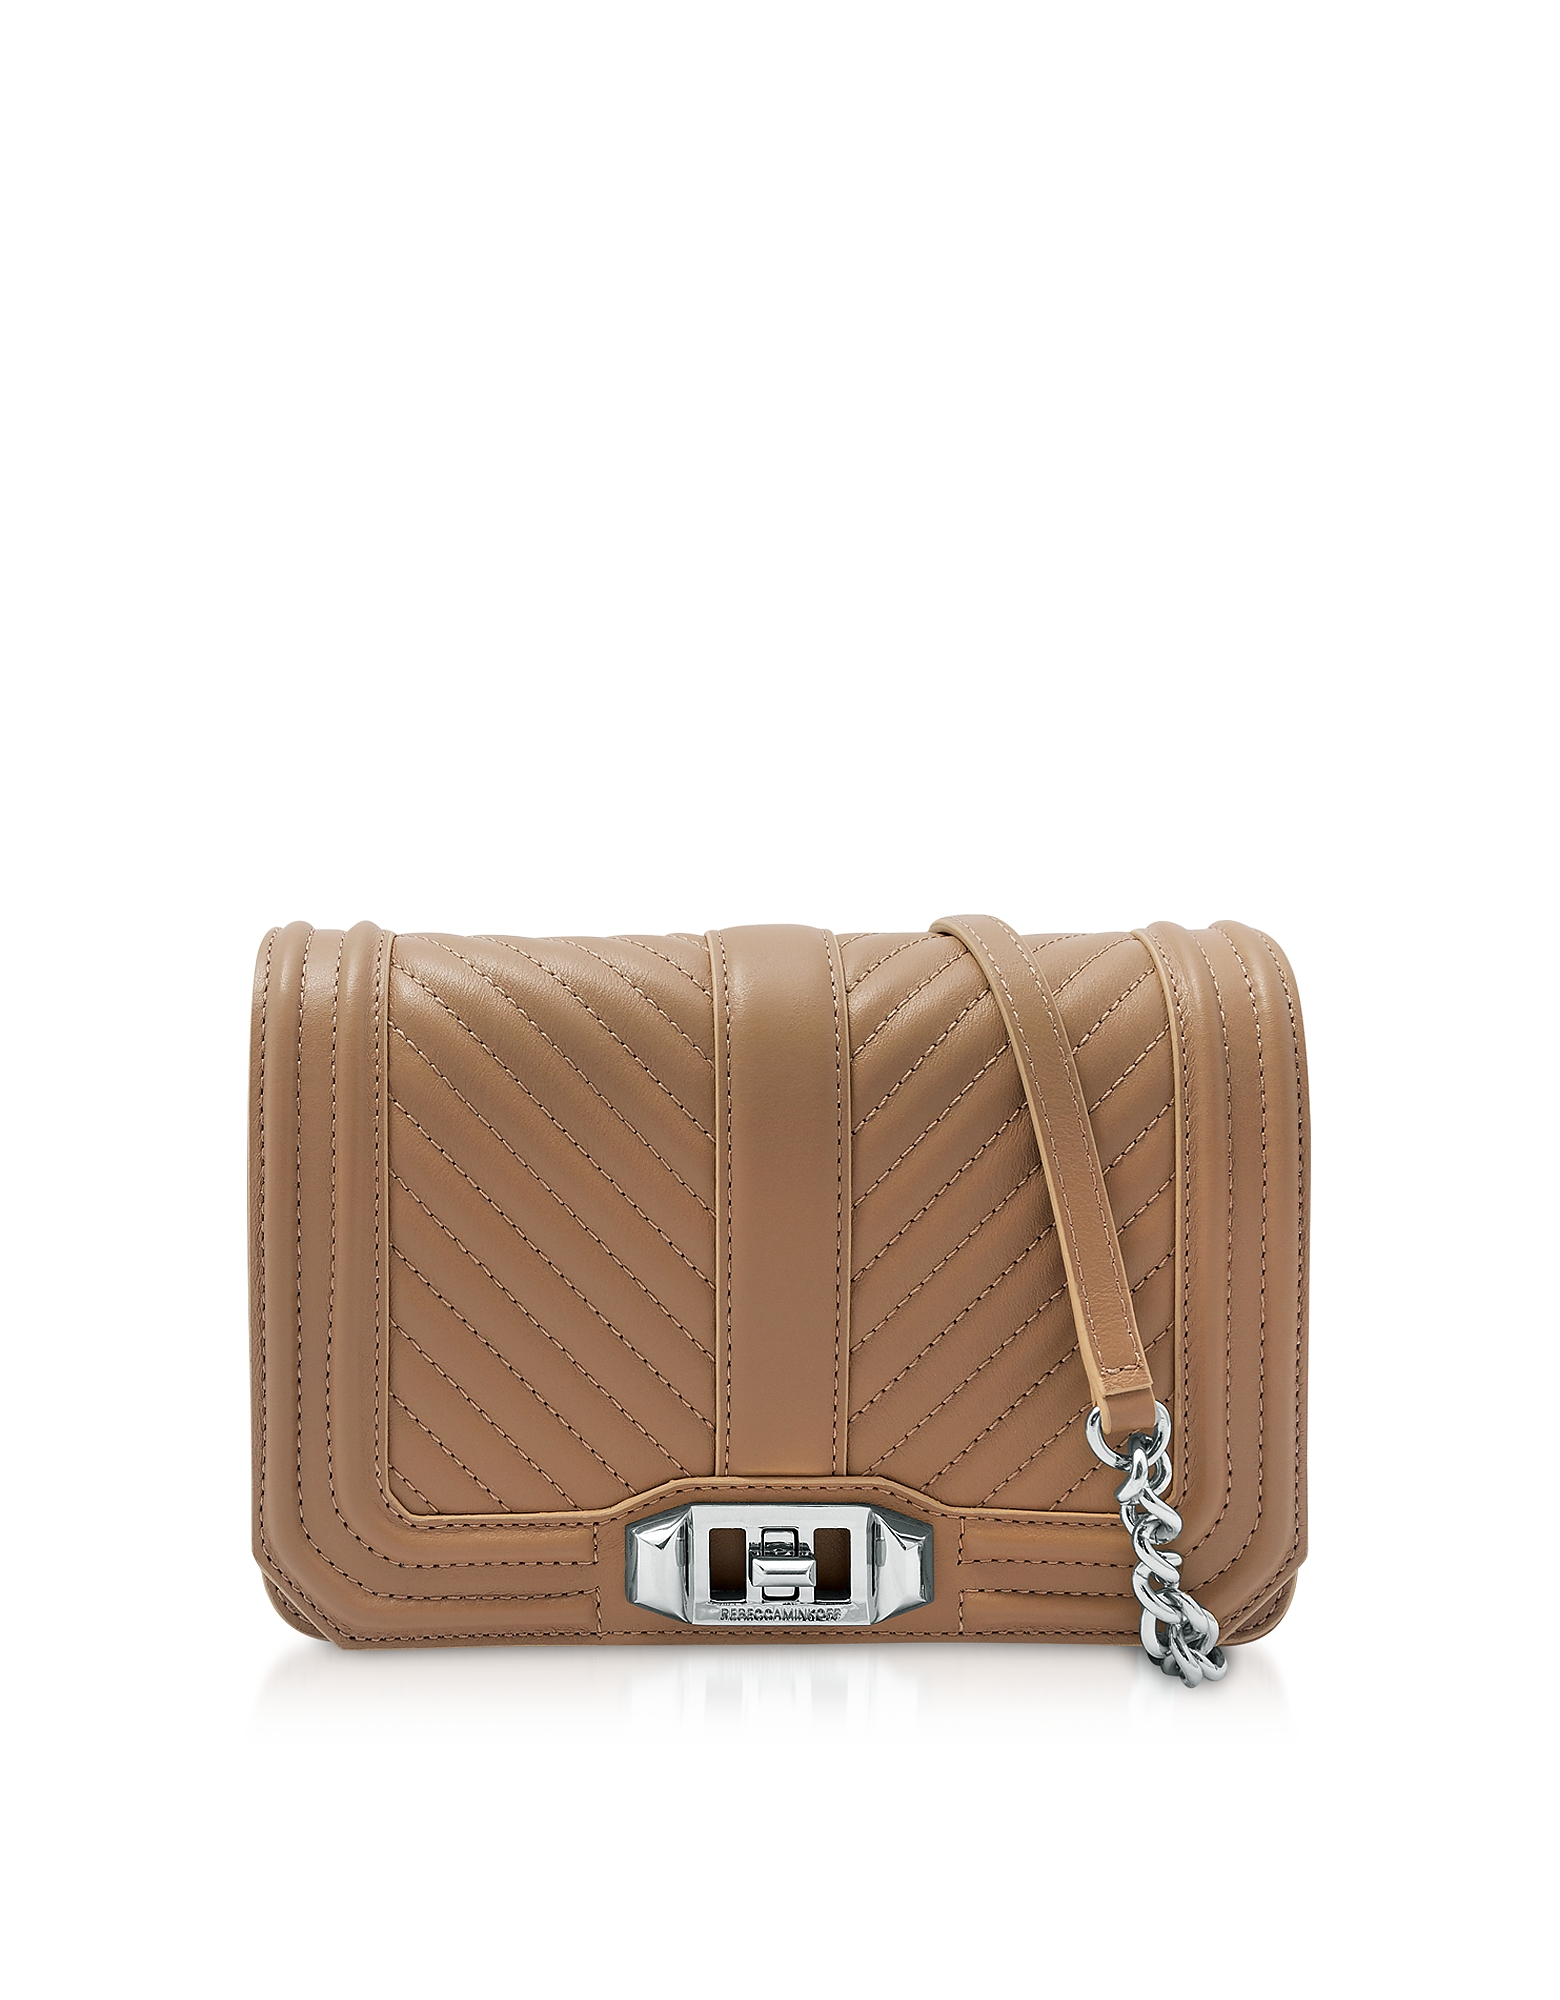 Rebecca Minkoff Handbags, Desert Small Quilted Leather Love Crossbody Bag